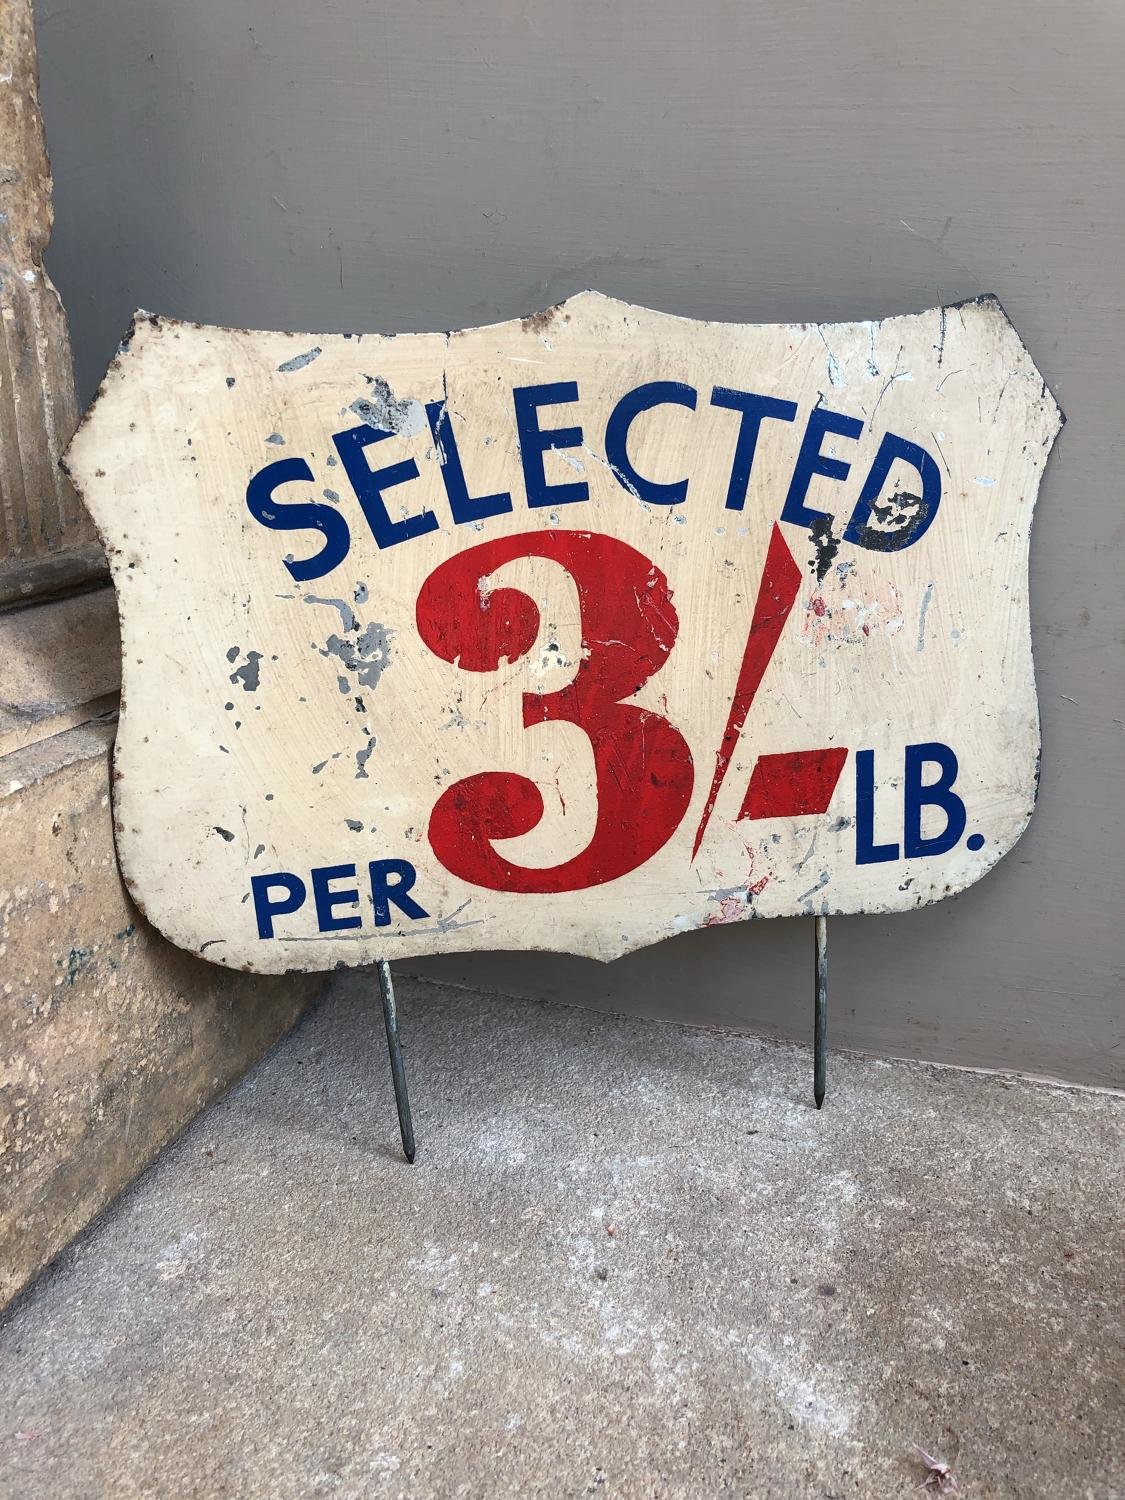 Huge Early 20thC Grocers Painted Tin Sign - Selected 3' - Per LB